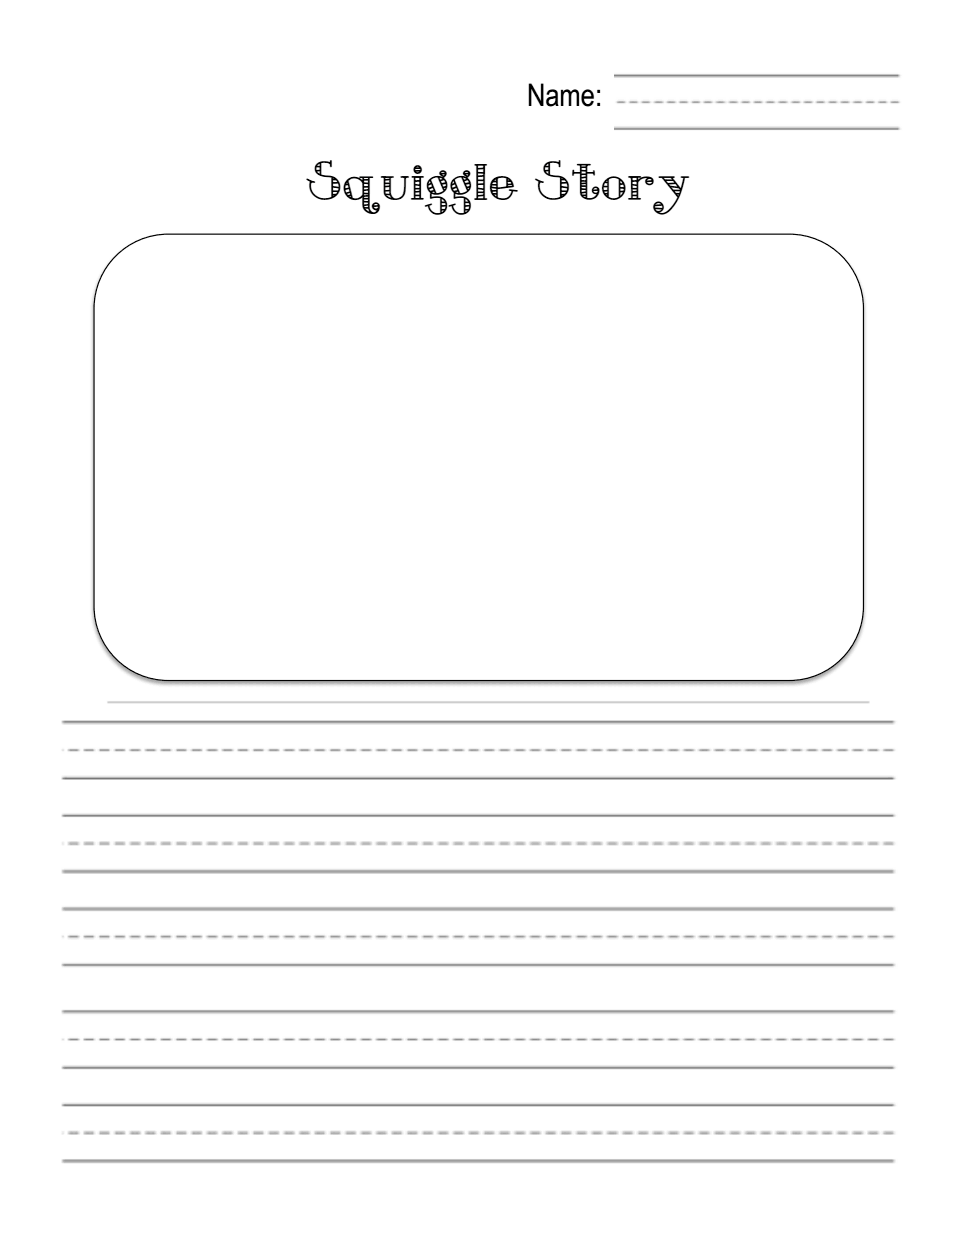 Workbooks squiggle art worksheets : Squiggle Story 1.pdf | All the Kindergarten Writing Ideas I want ...